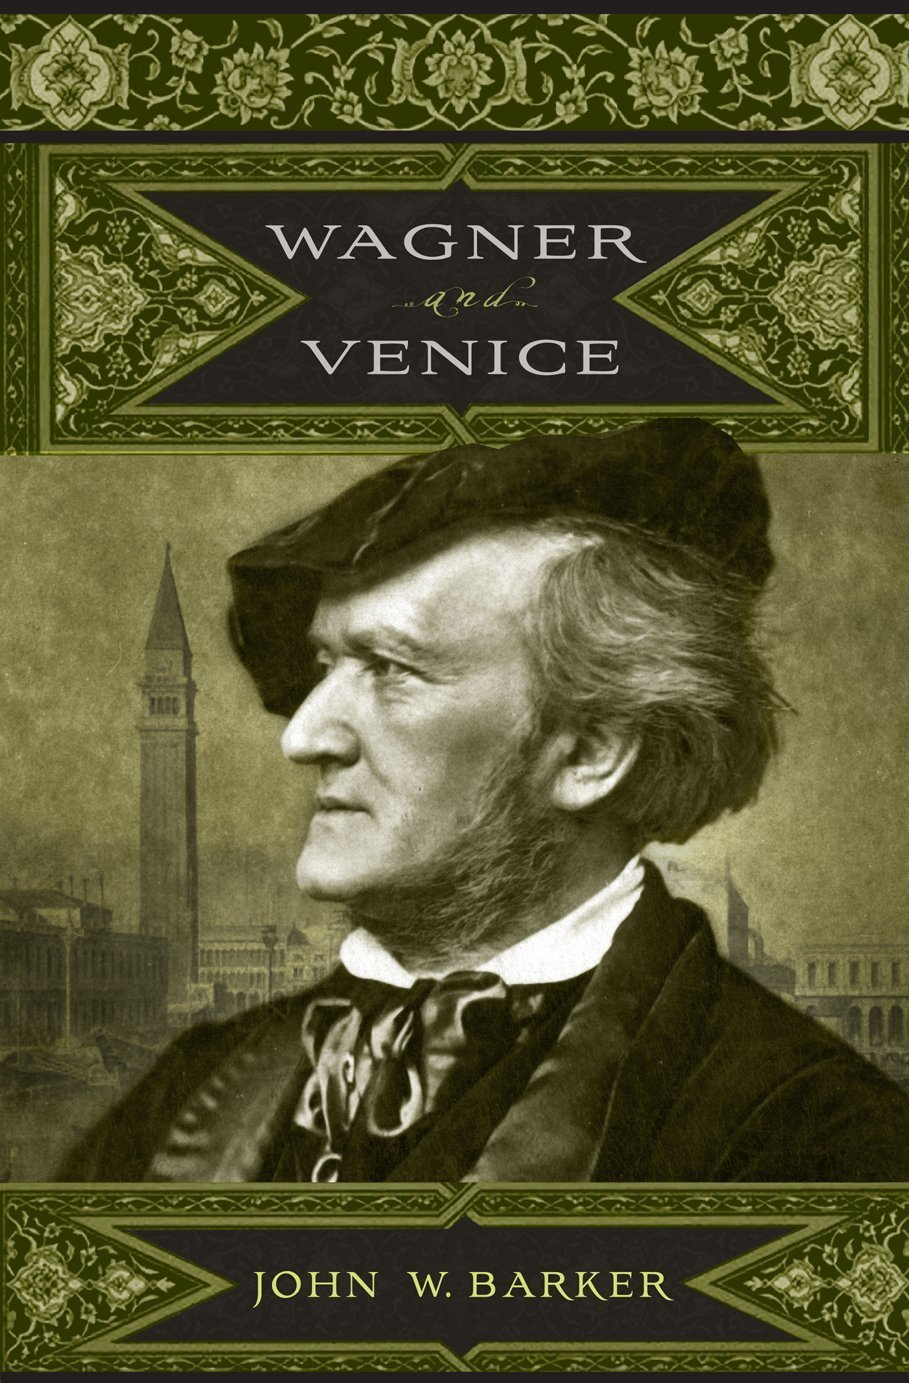 Wagner and Venice (Eastman Studies in Music) pdf